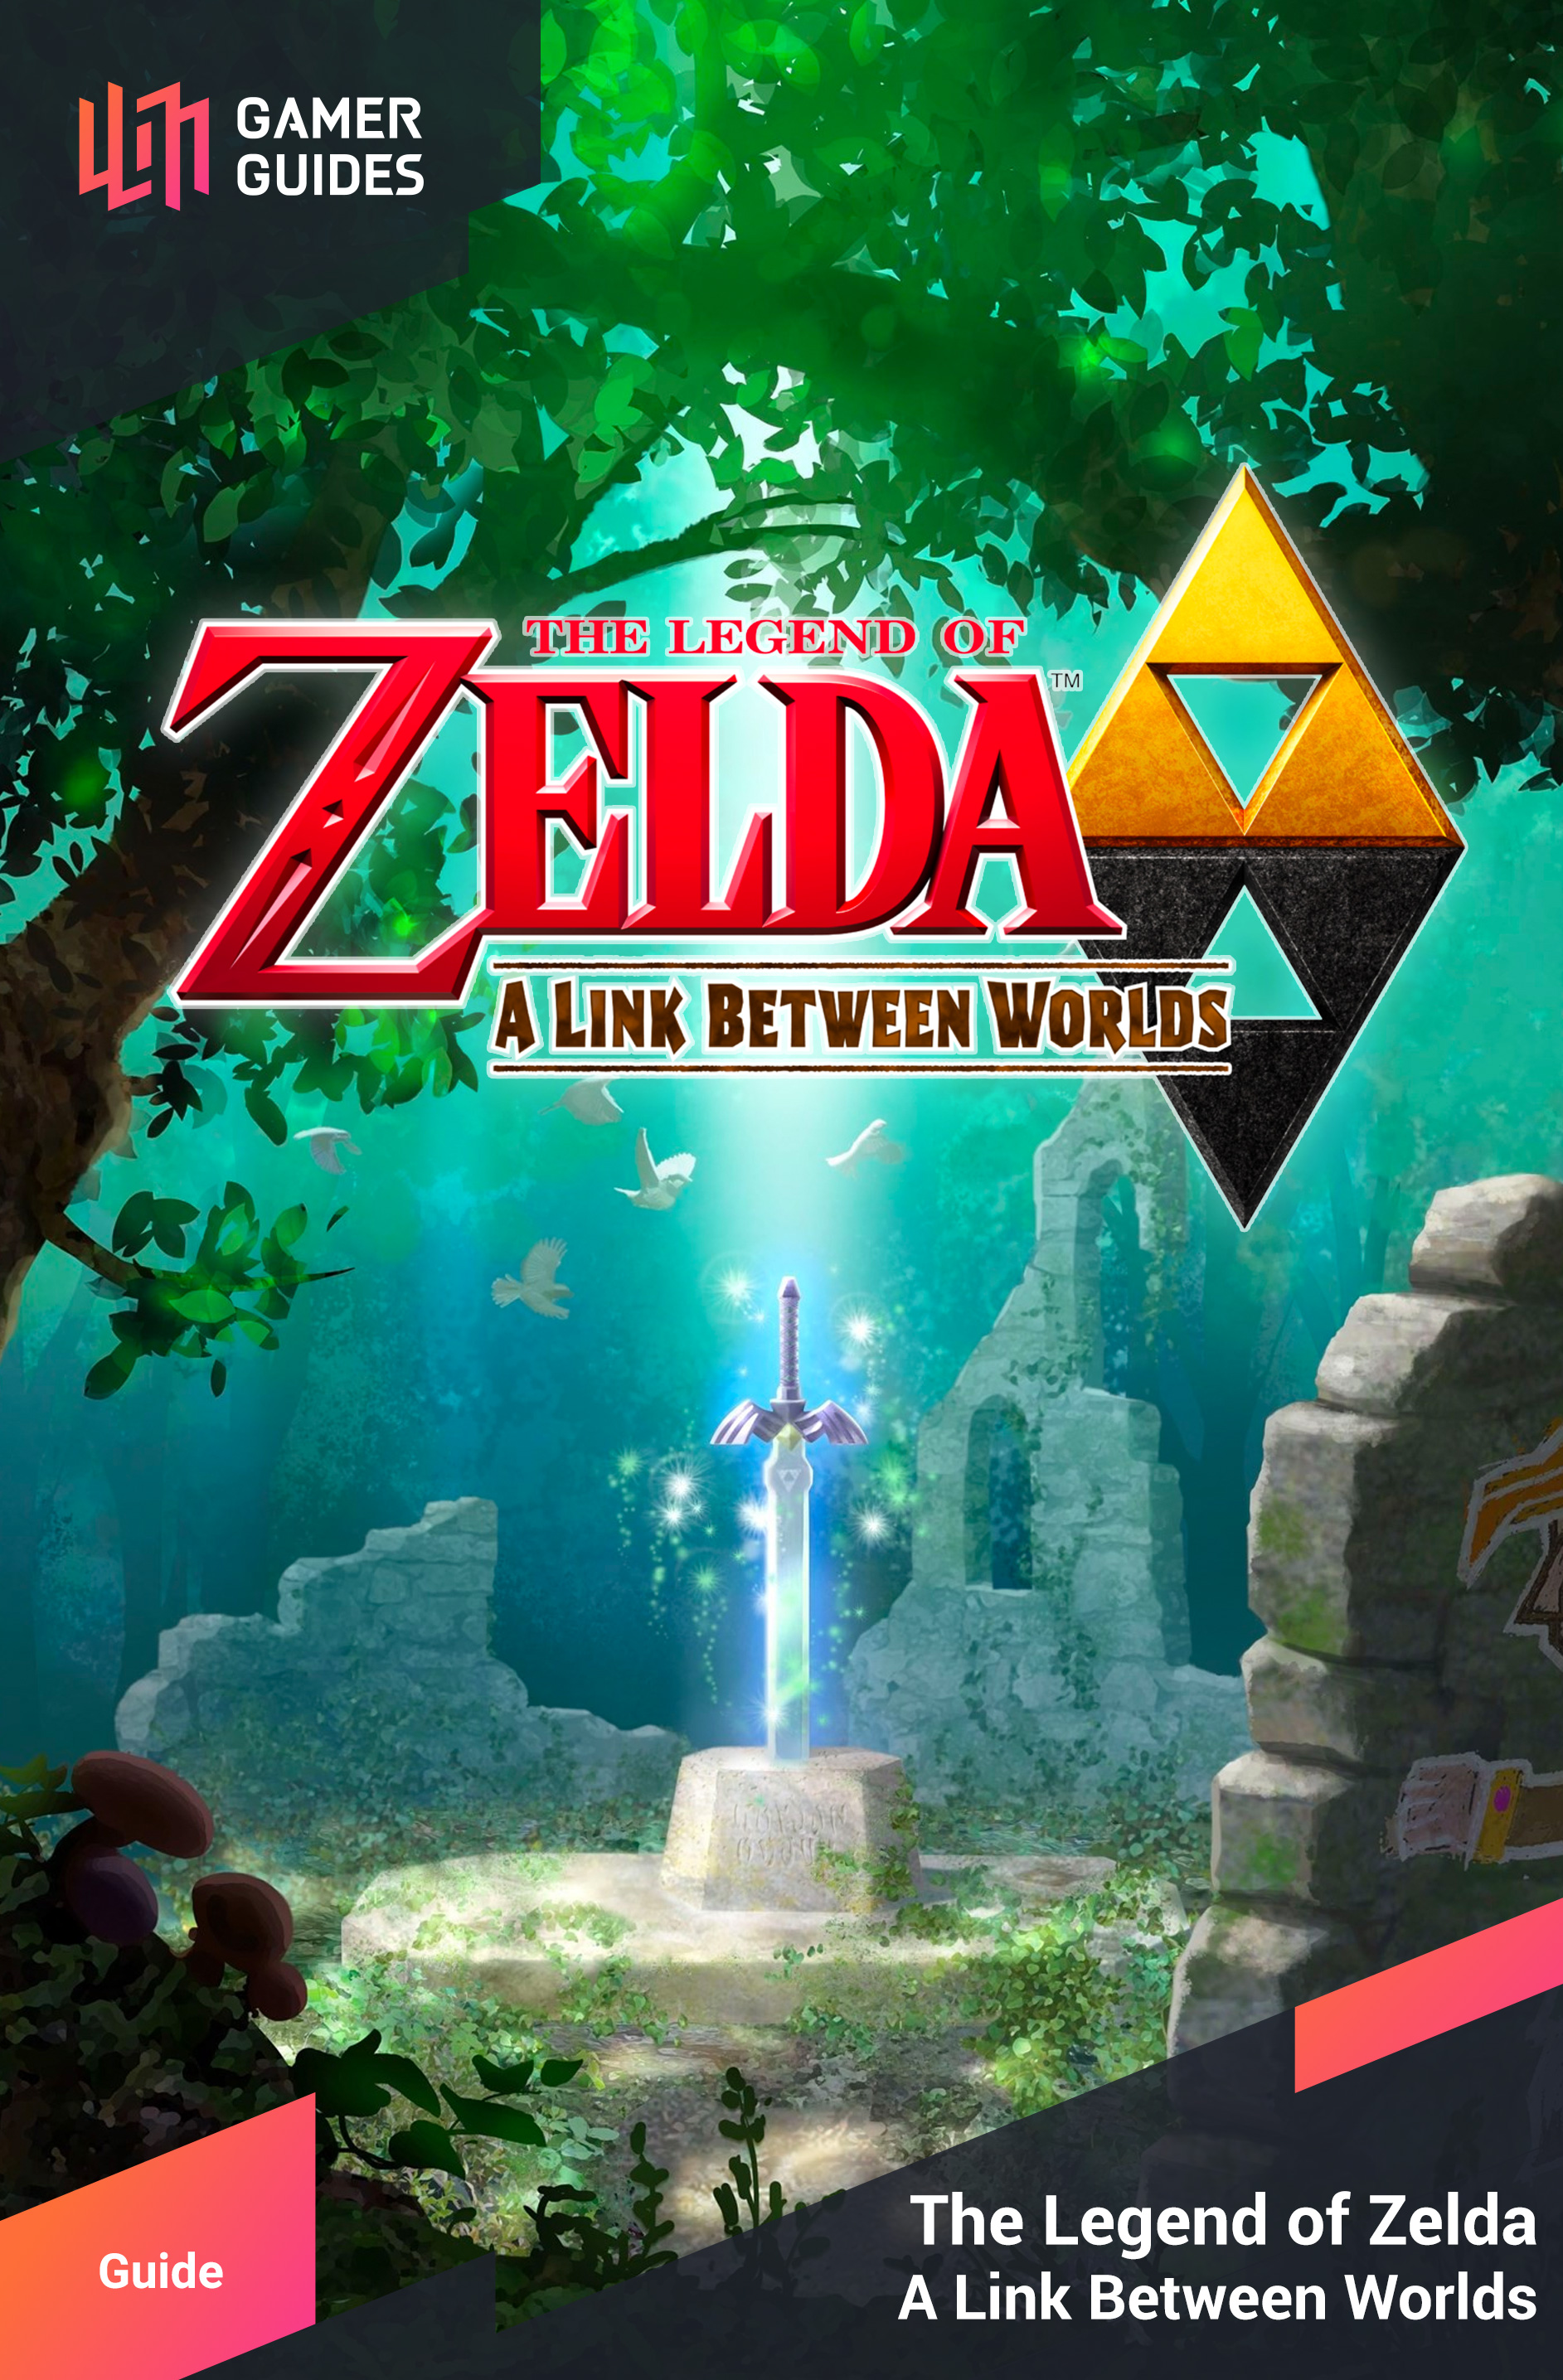 The Legend of Zelda: A Link Between Worlds | Gamer Guides